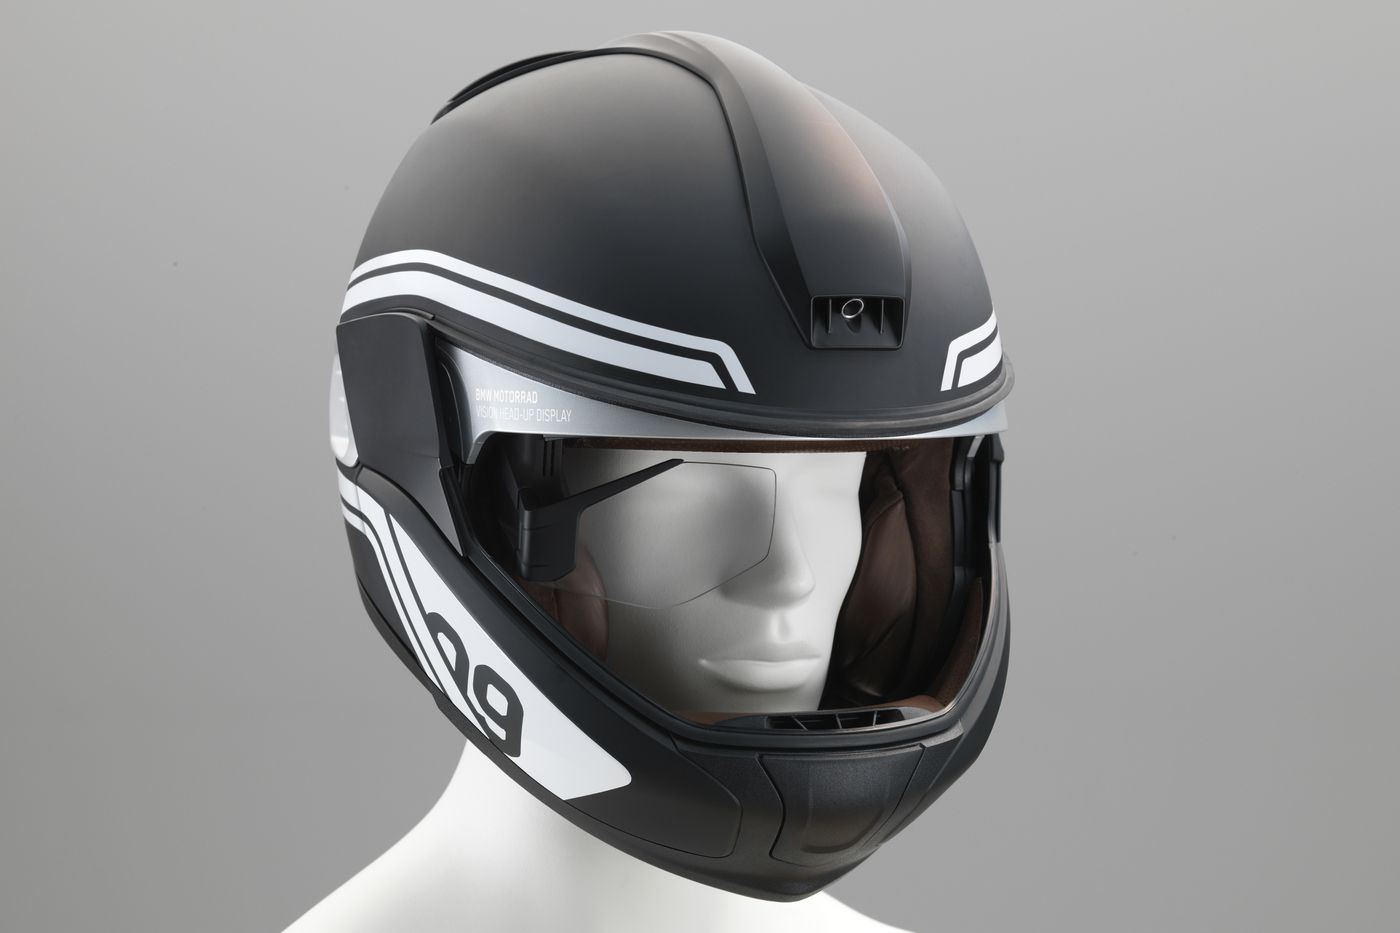 the idea of a headsup display into a motorcycle helmet is not a new one u2013 firms like skully have been trying to perfect it for years u2013 but